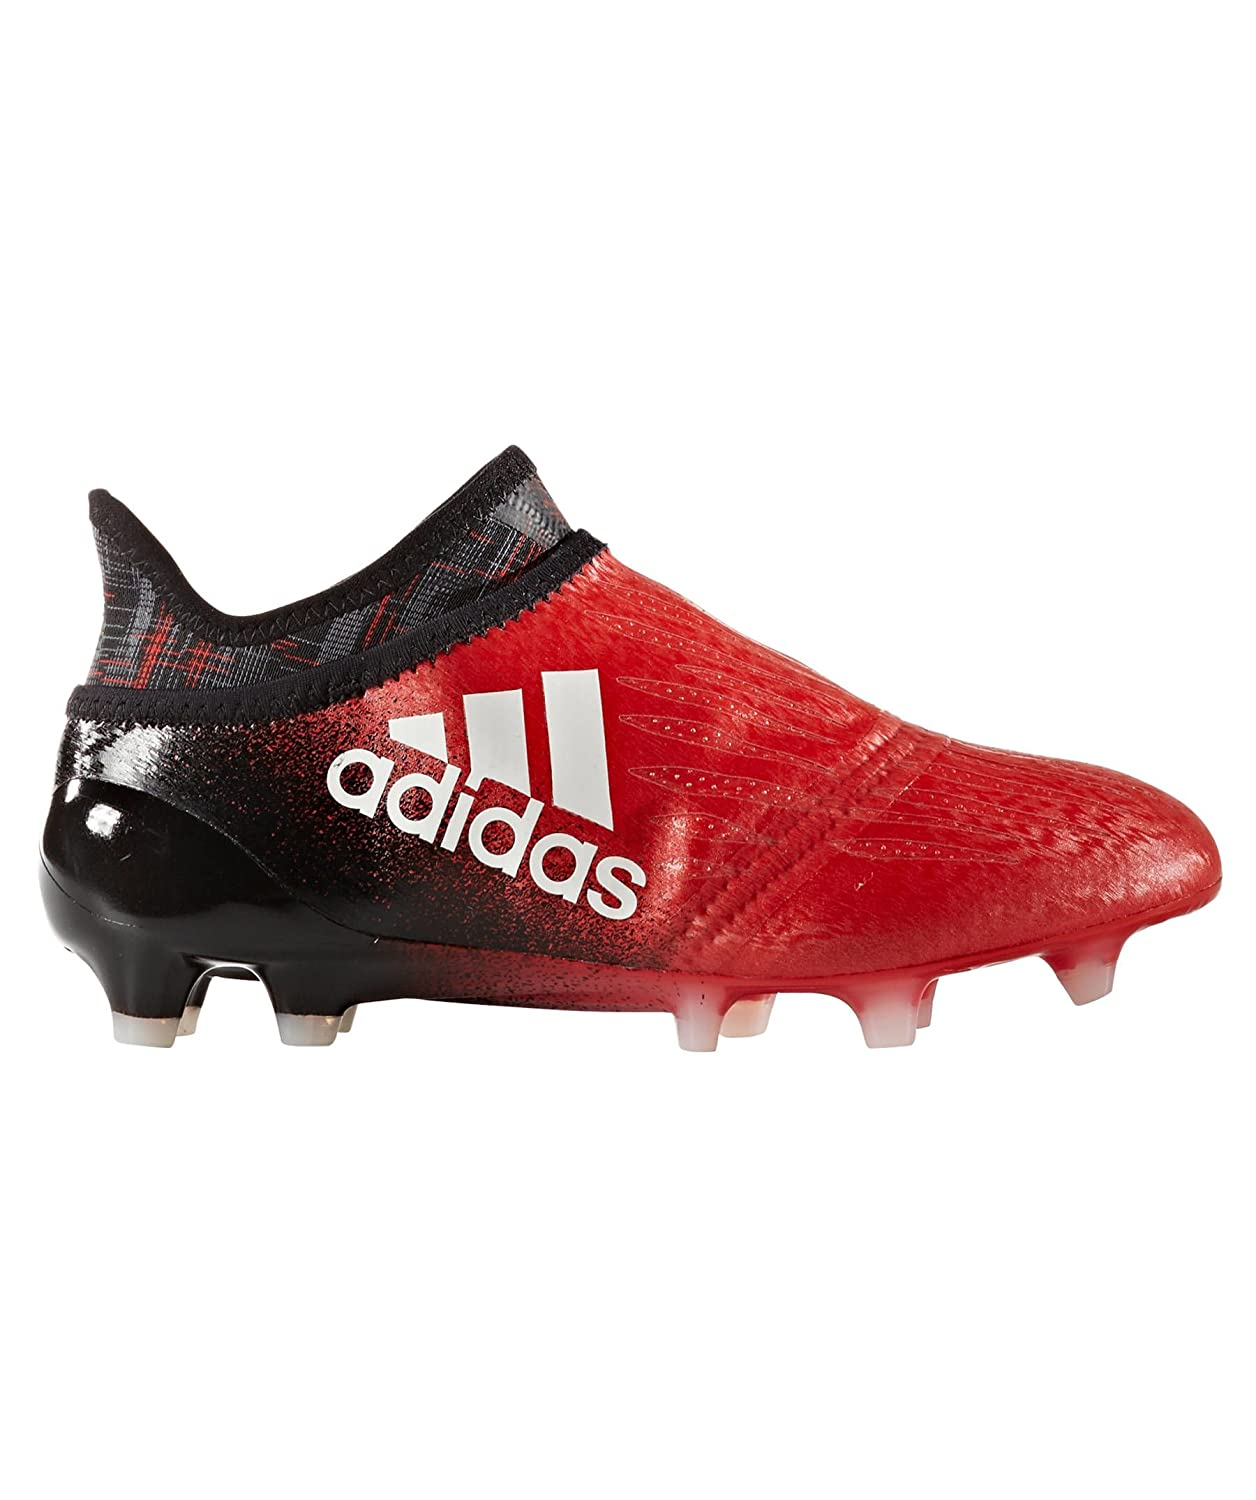 606c5c97a4c adidas X 16+ Pure Chaos Kids FG Football Boots - Red White Core Black -  Size 3.5  Amazon.co.uk  Shoes   Bags